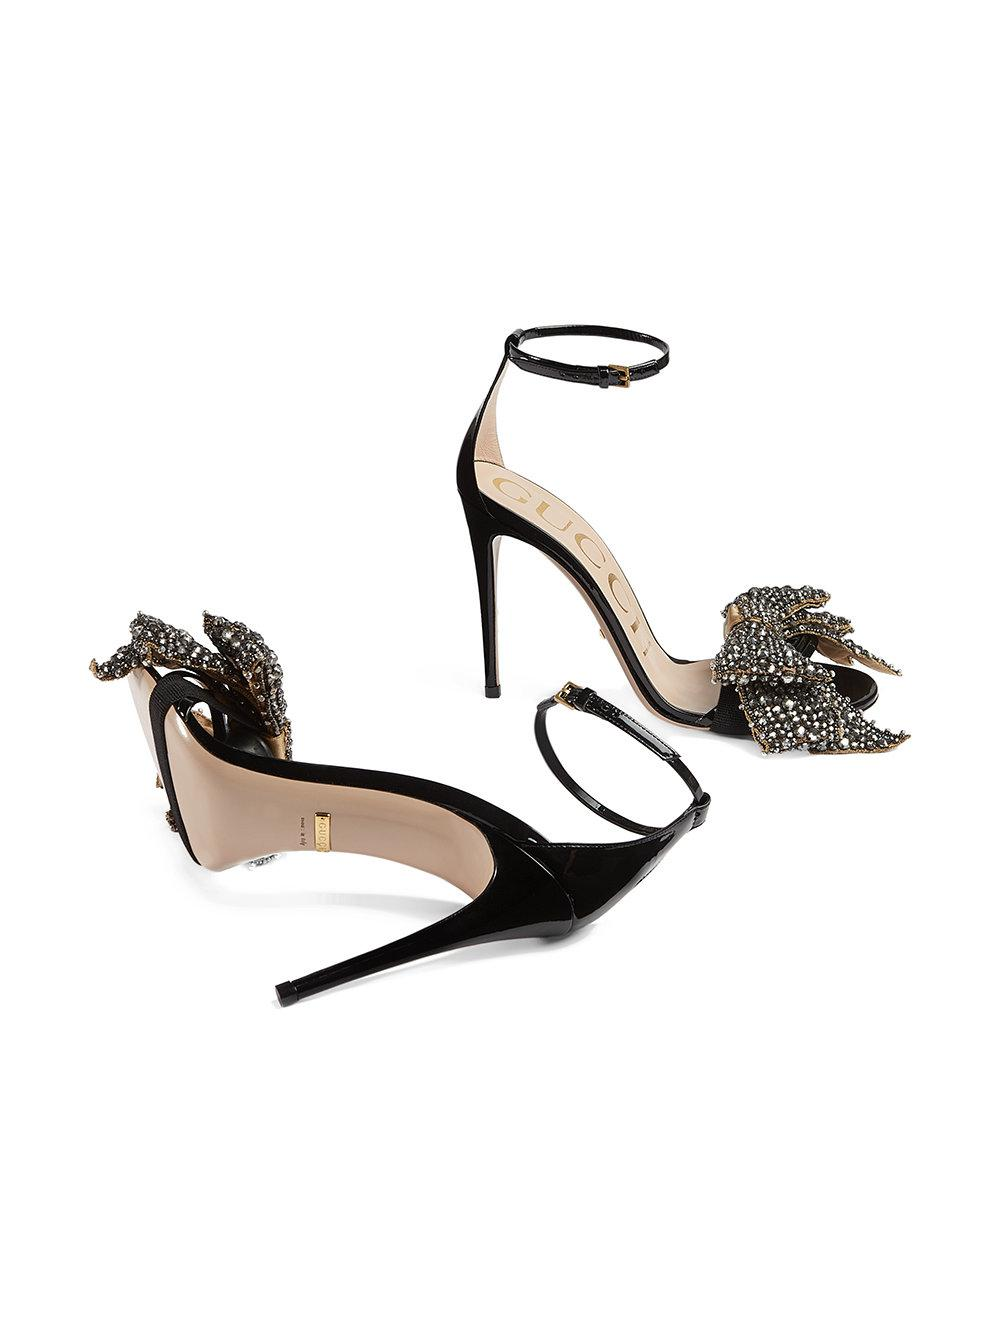 373ab1cca03fa Gucci Patent Leather Sandals With Removable Crystal Bows in Black - Lyst